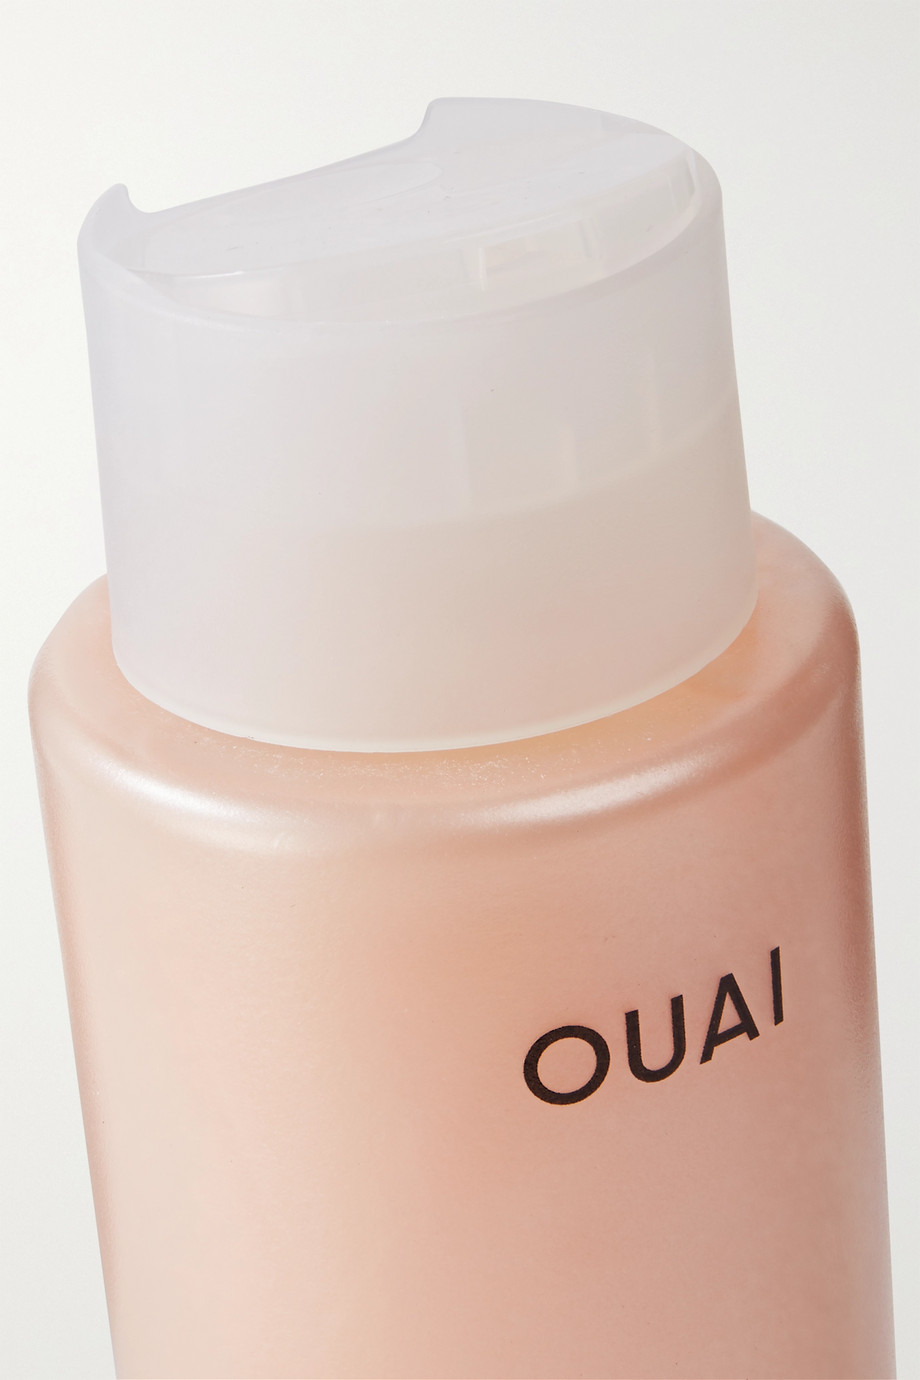 OUAI Haircare Thick Hair Shampoo, 300ml